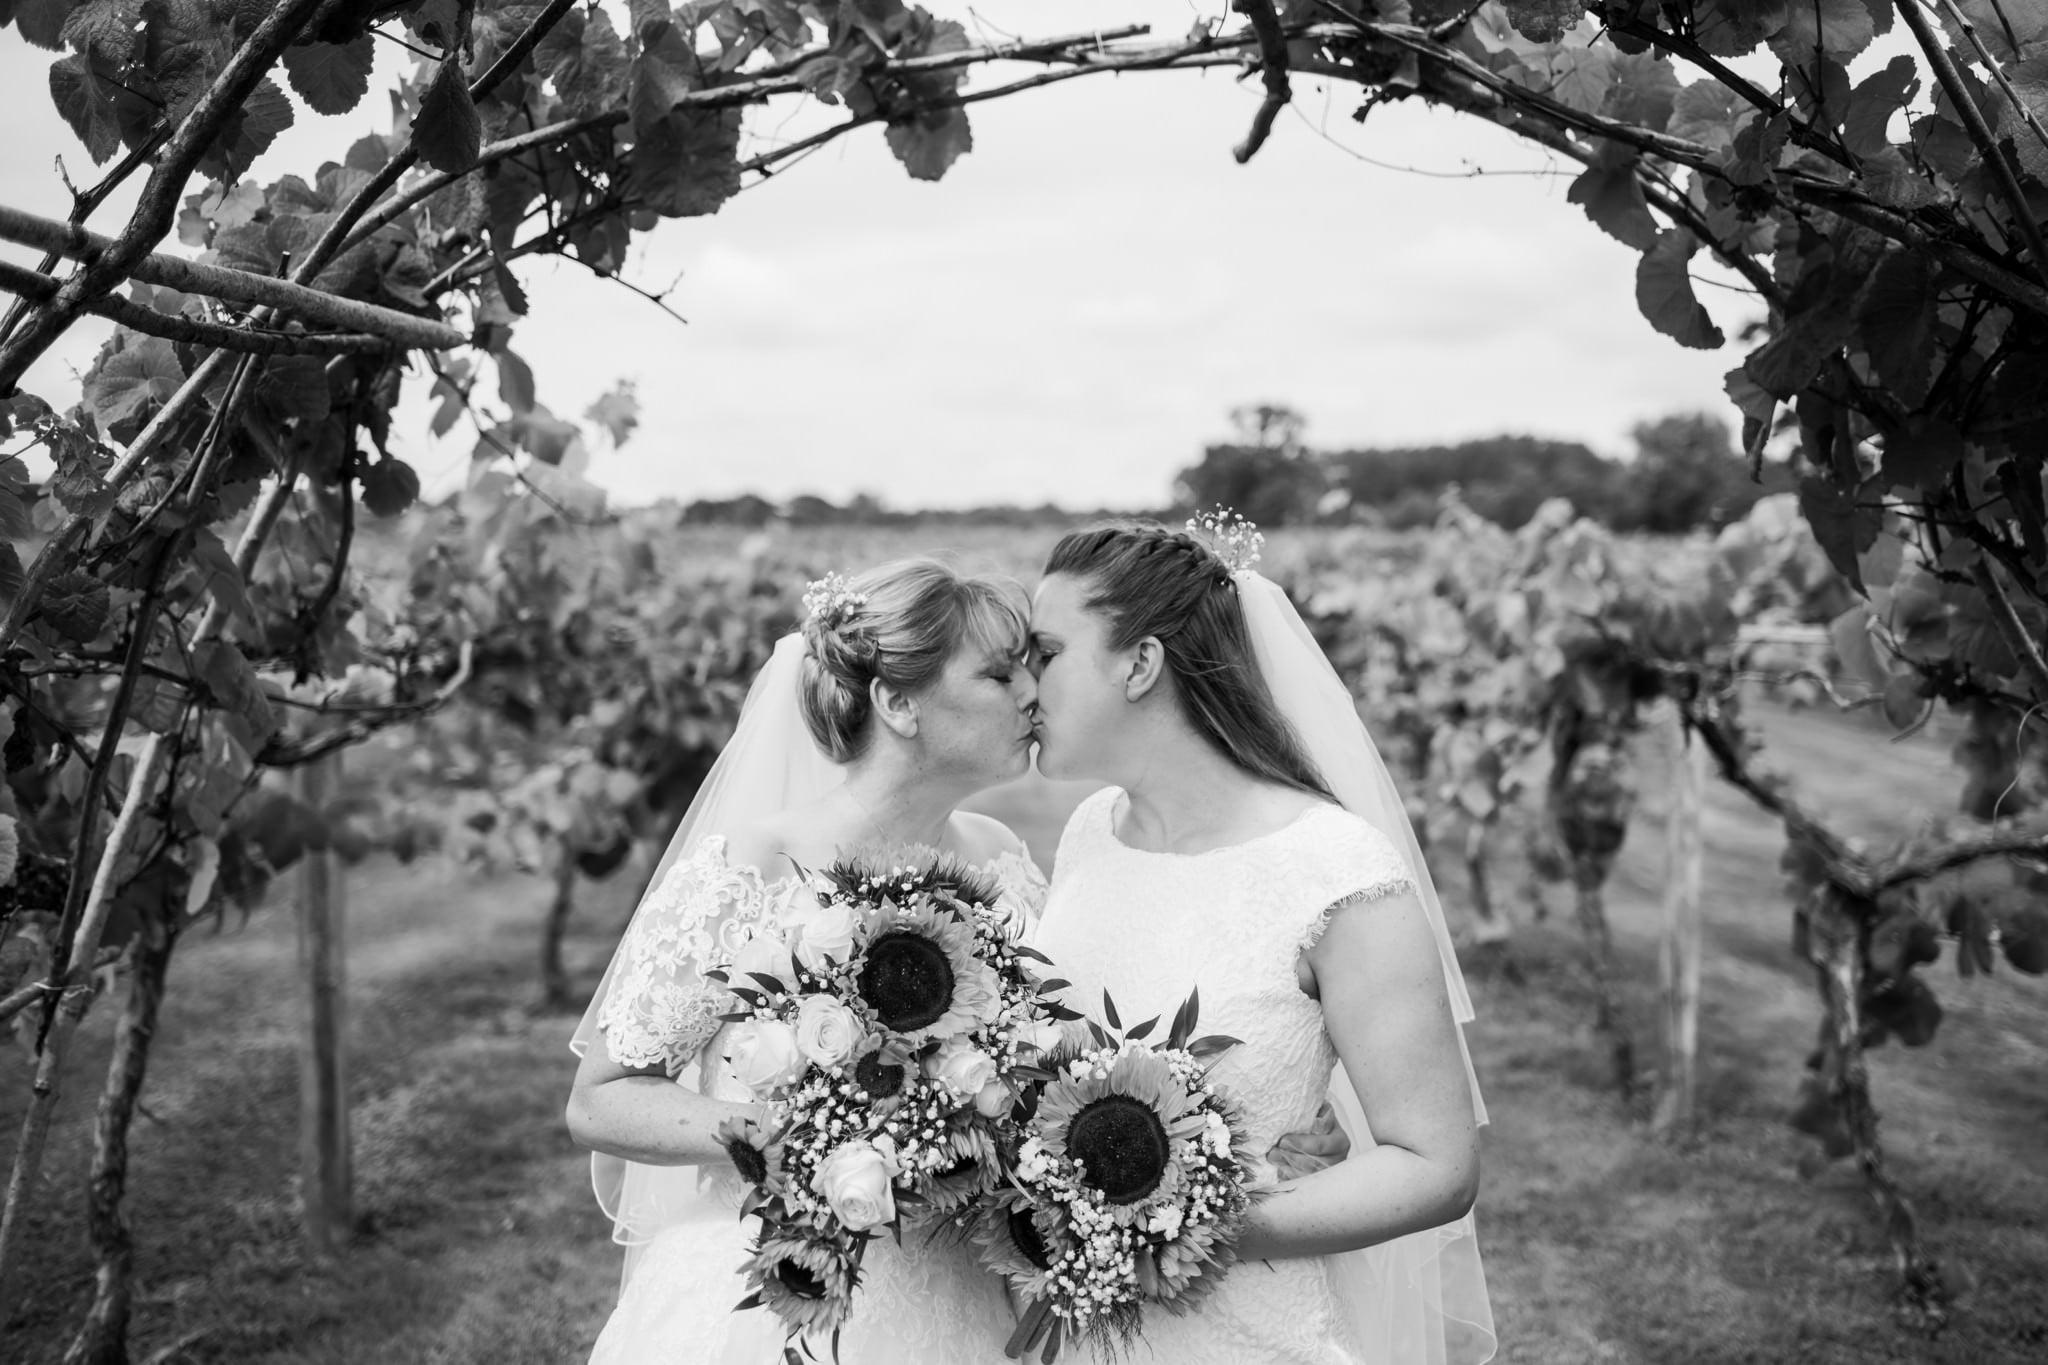 Three Choirs Vineyard wedding day in July